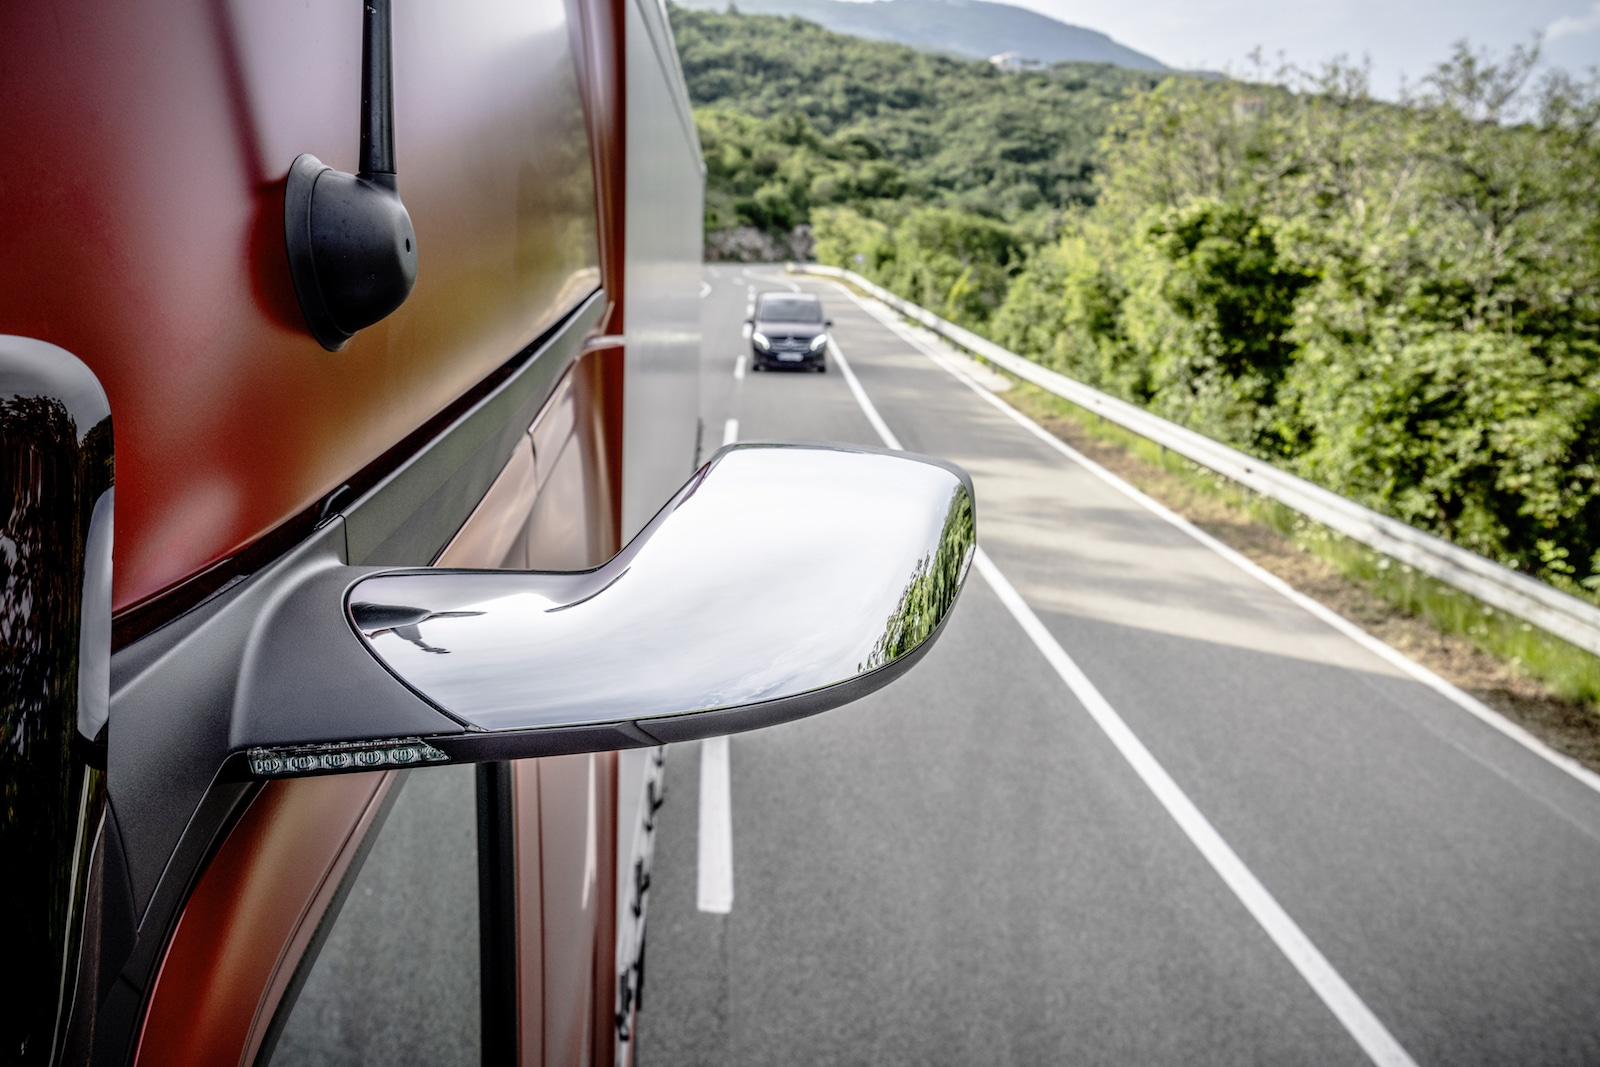 Daimler Experiments By Replacing Mirrors With Cameras On